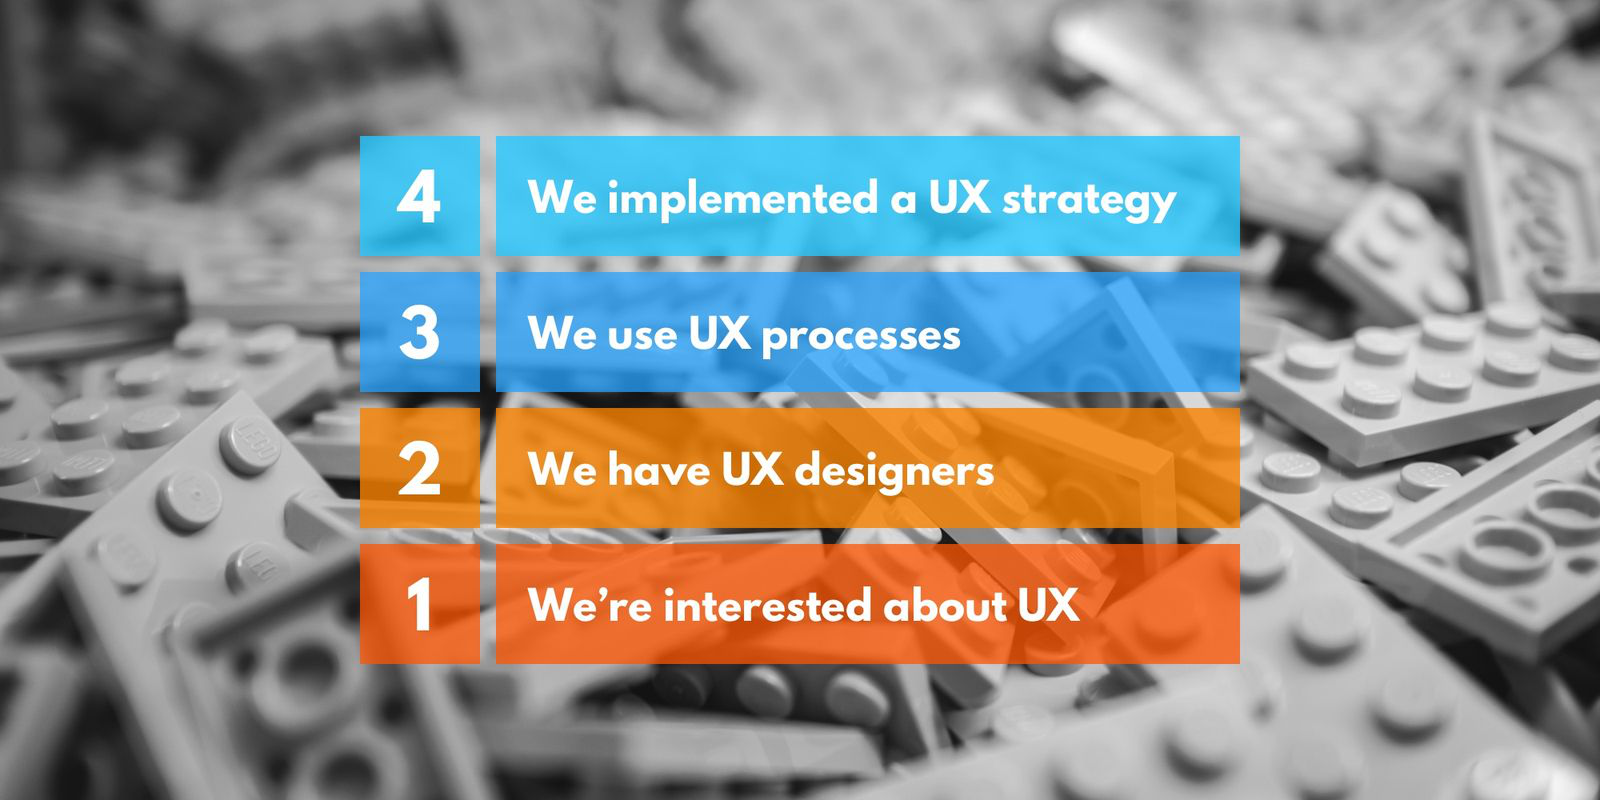 The UX levels of UX maturity of organisations